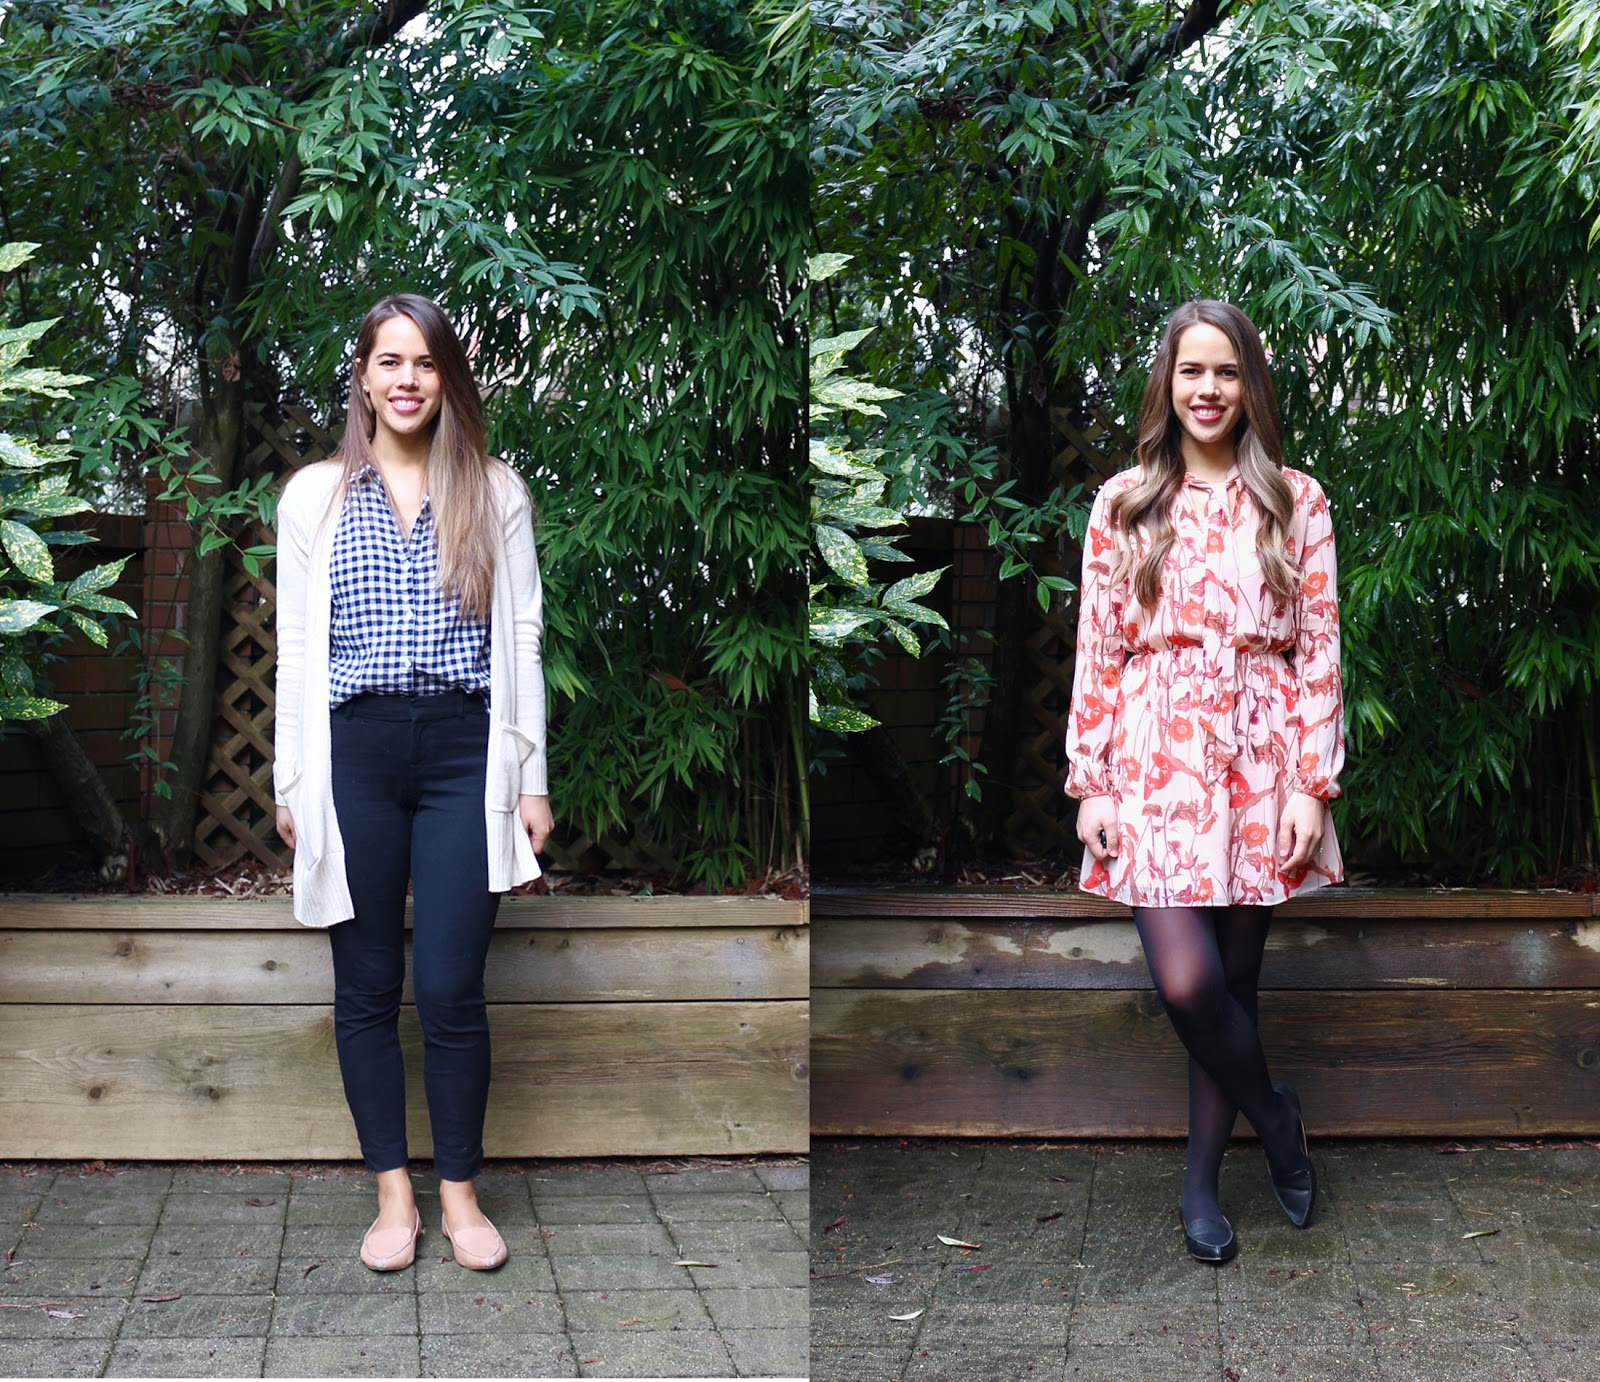 Jules in Flats - March Work Outfits (Business Casual Workwear on a Budget)